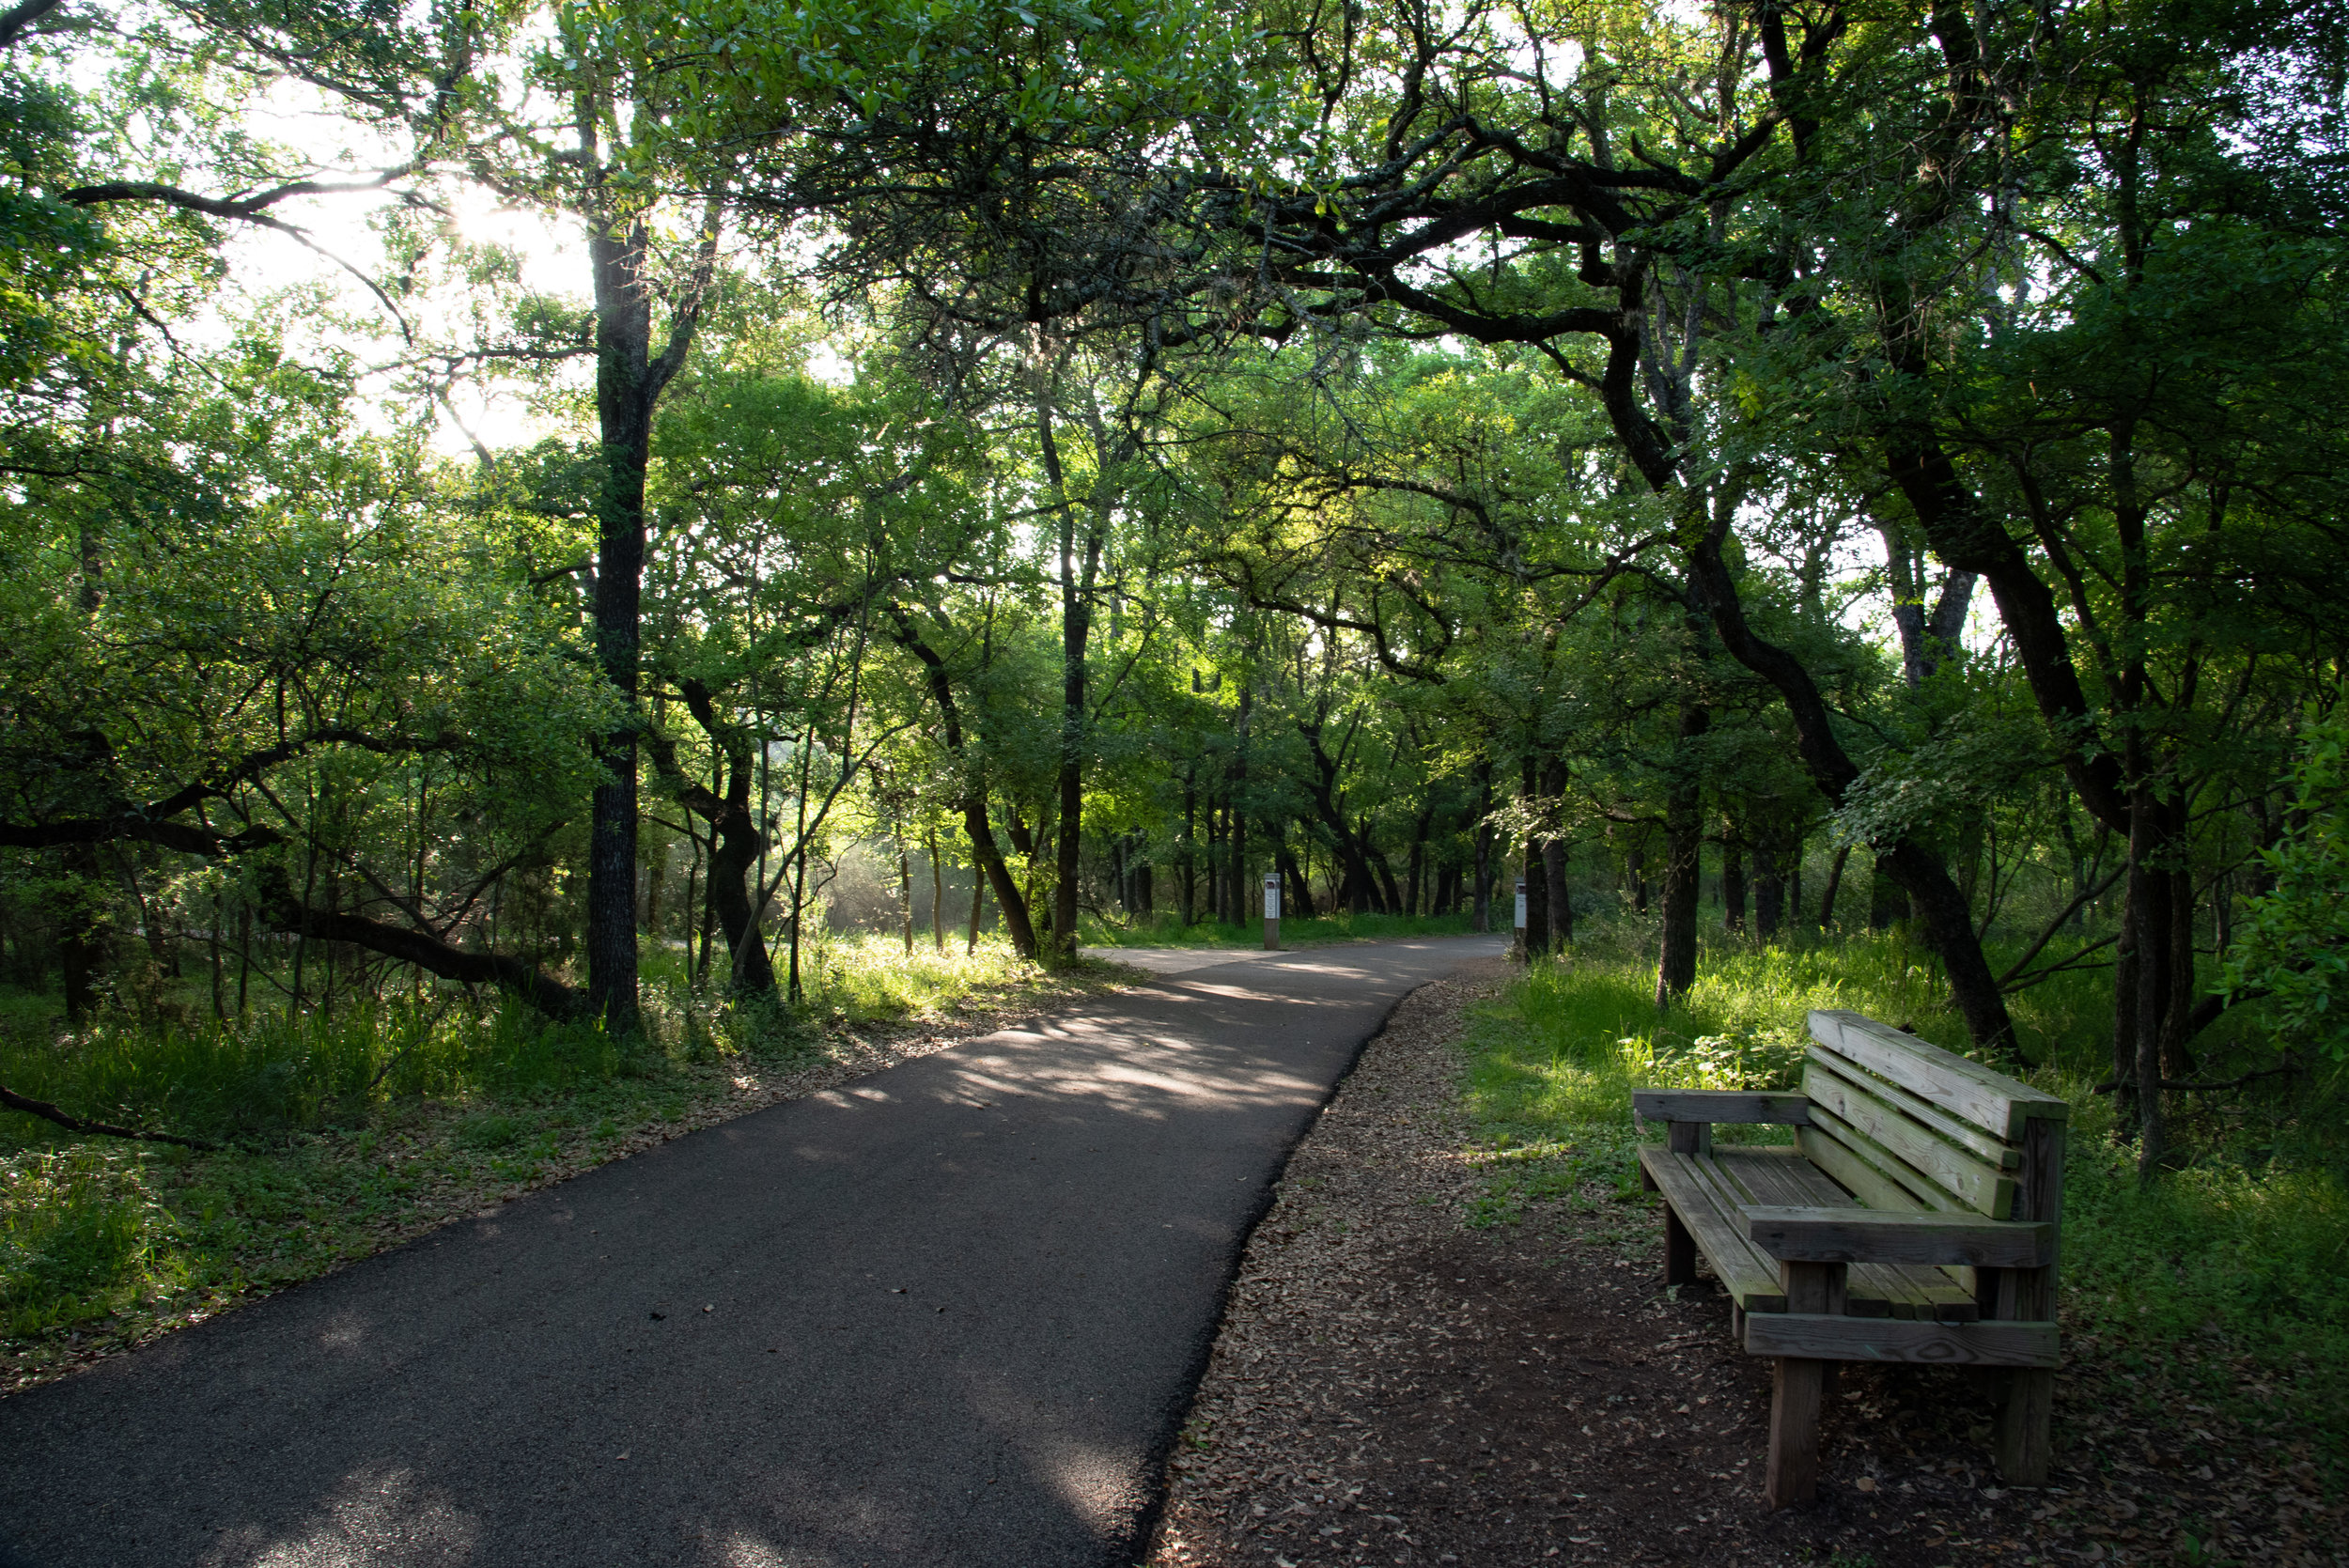 Shade - Shade is a precious asset in South Texas and the dog parks, playgrounds, picnic areas, and trails all have some shady areas.